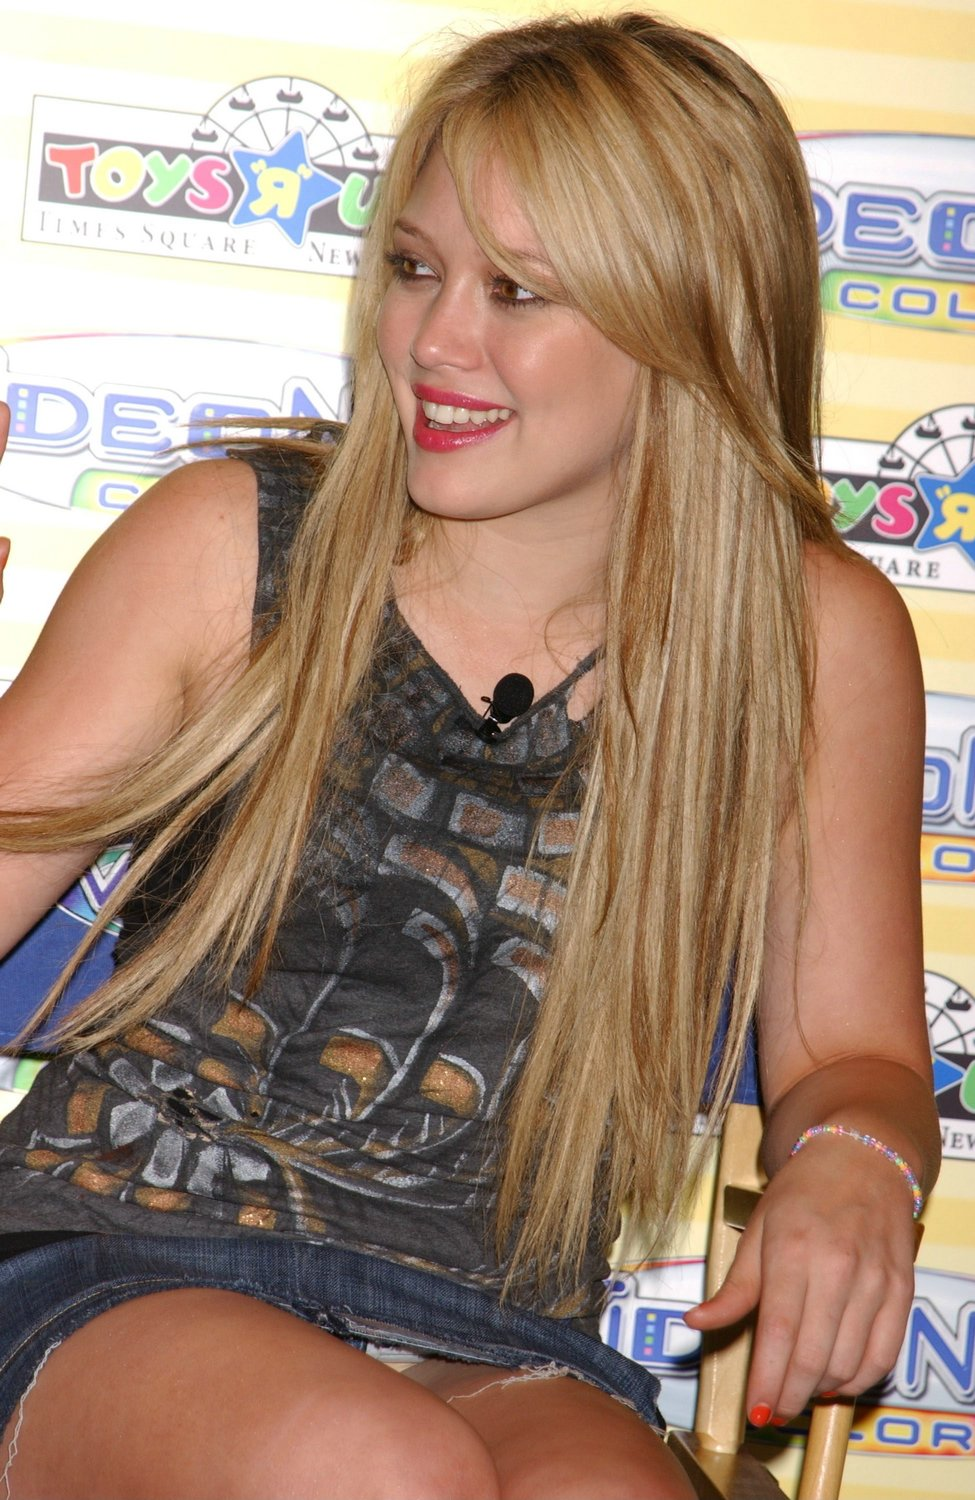 Hilary Duff With No Panties Pictures